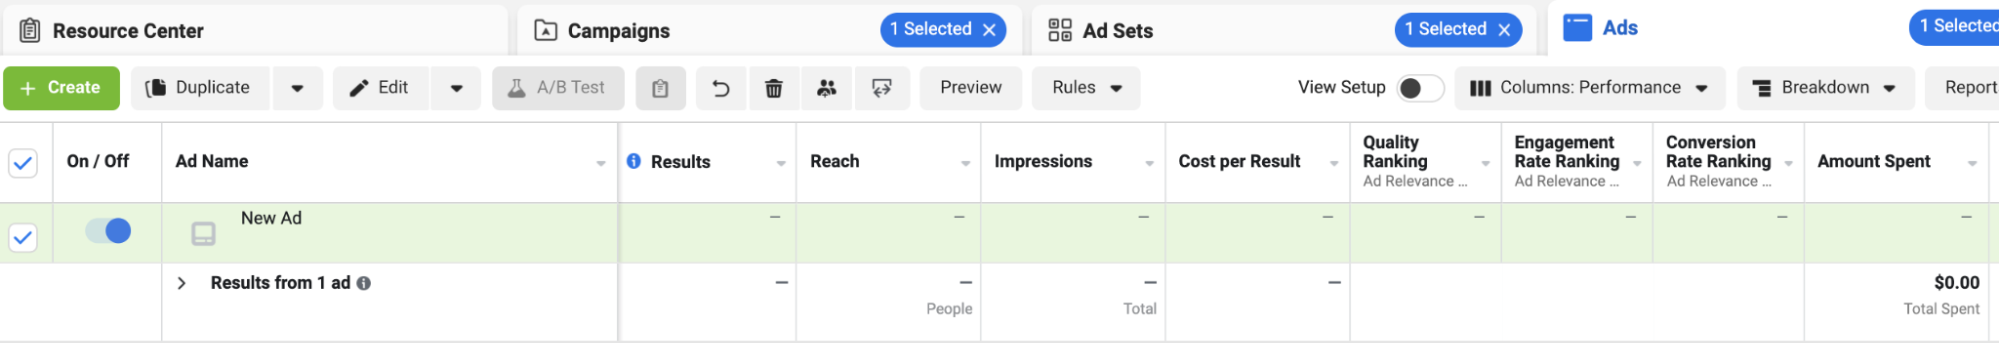 analyzing result of IG ad